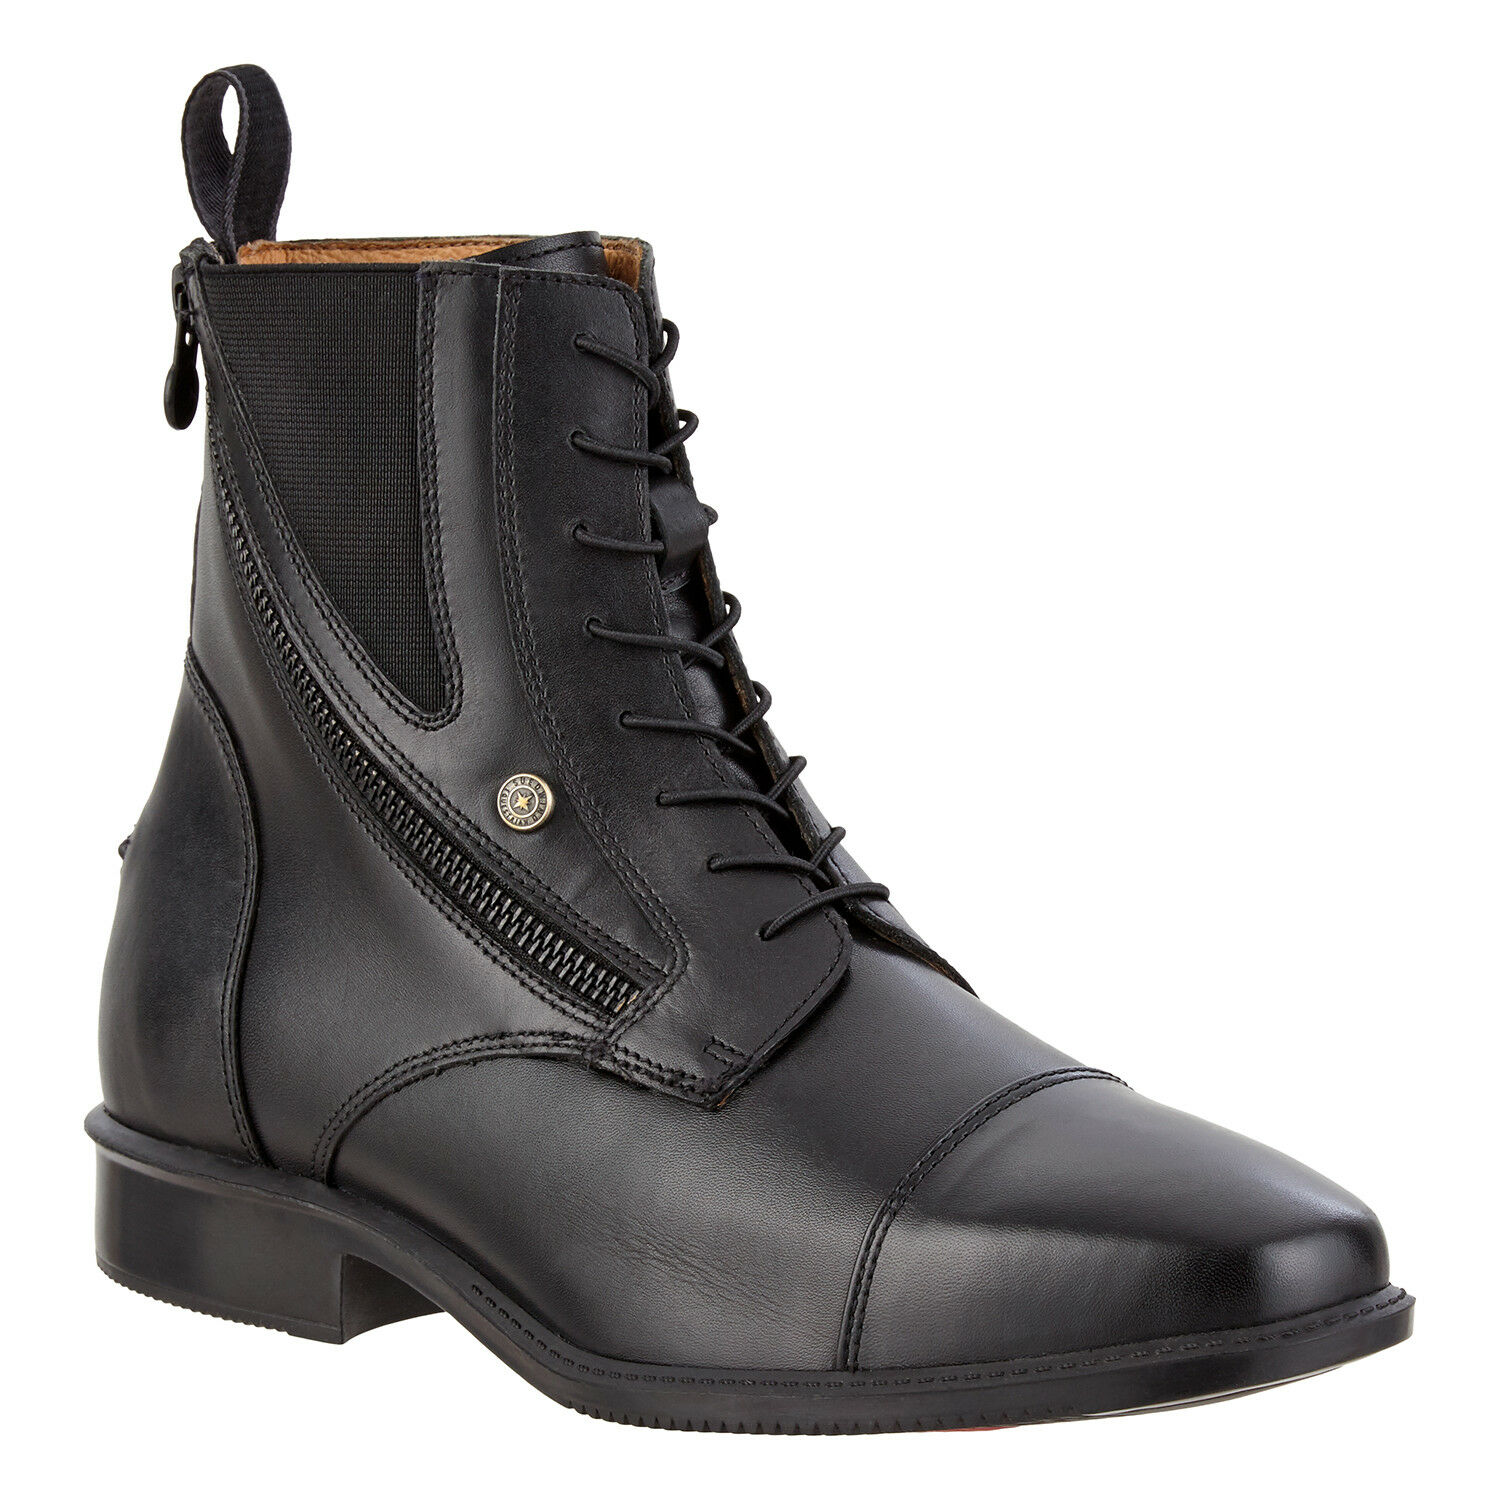 Suedwind Stiefelette Legacy  SZ black komfortabel durch Fersendämpfung  general high quality